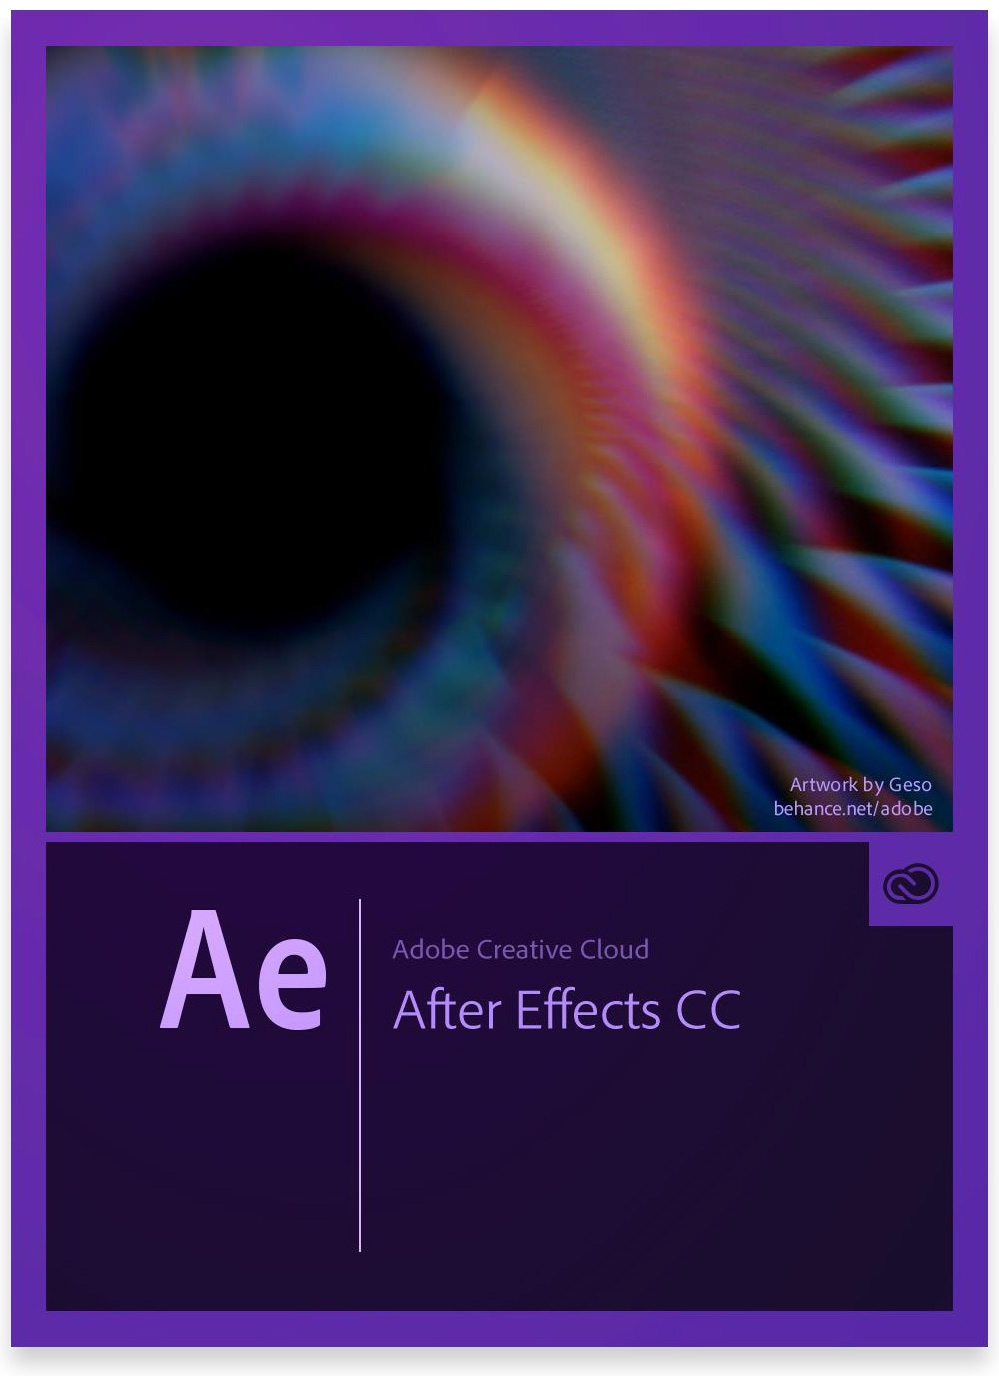 Adobe Creative Cloud 2014 Updates To Photoshop CC Illustrator CC InDesign CC Muse CC